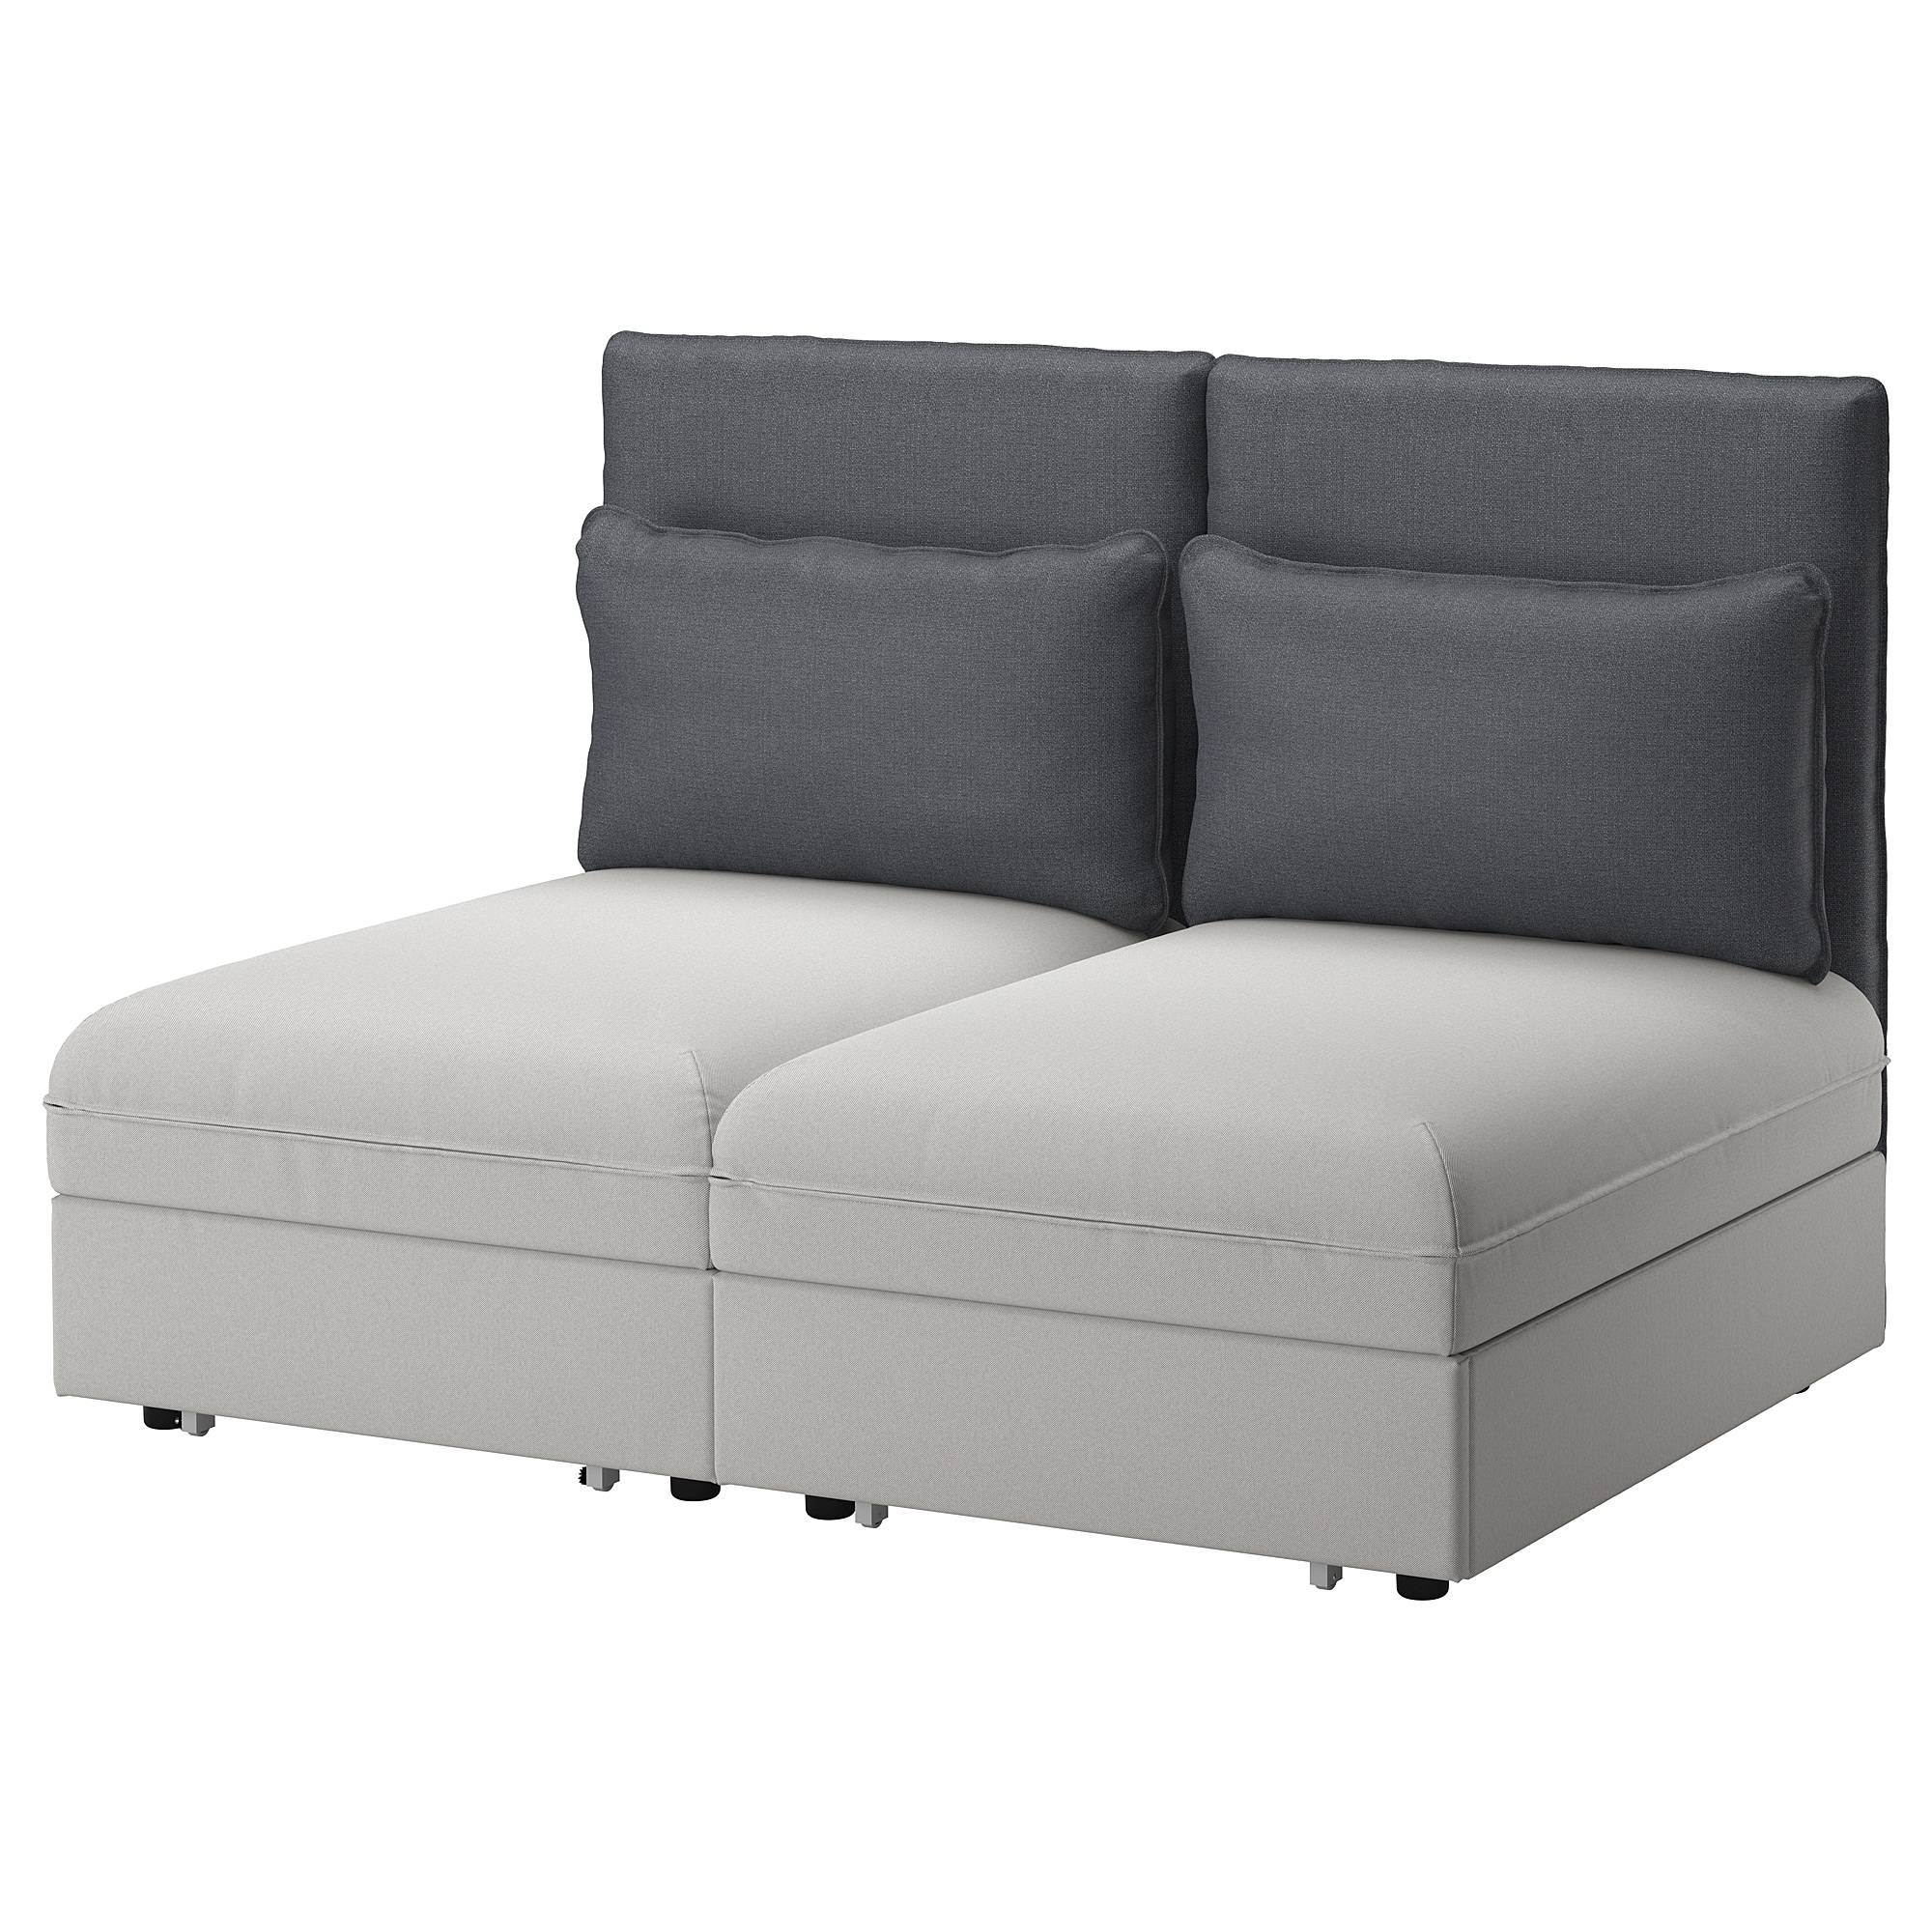 Sofa Beds & Futons – Ikea In Sectional Sofa Bed With Storage (View 16 of 25)